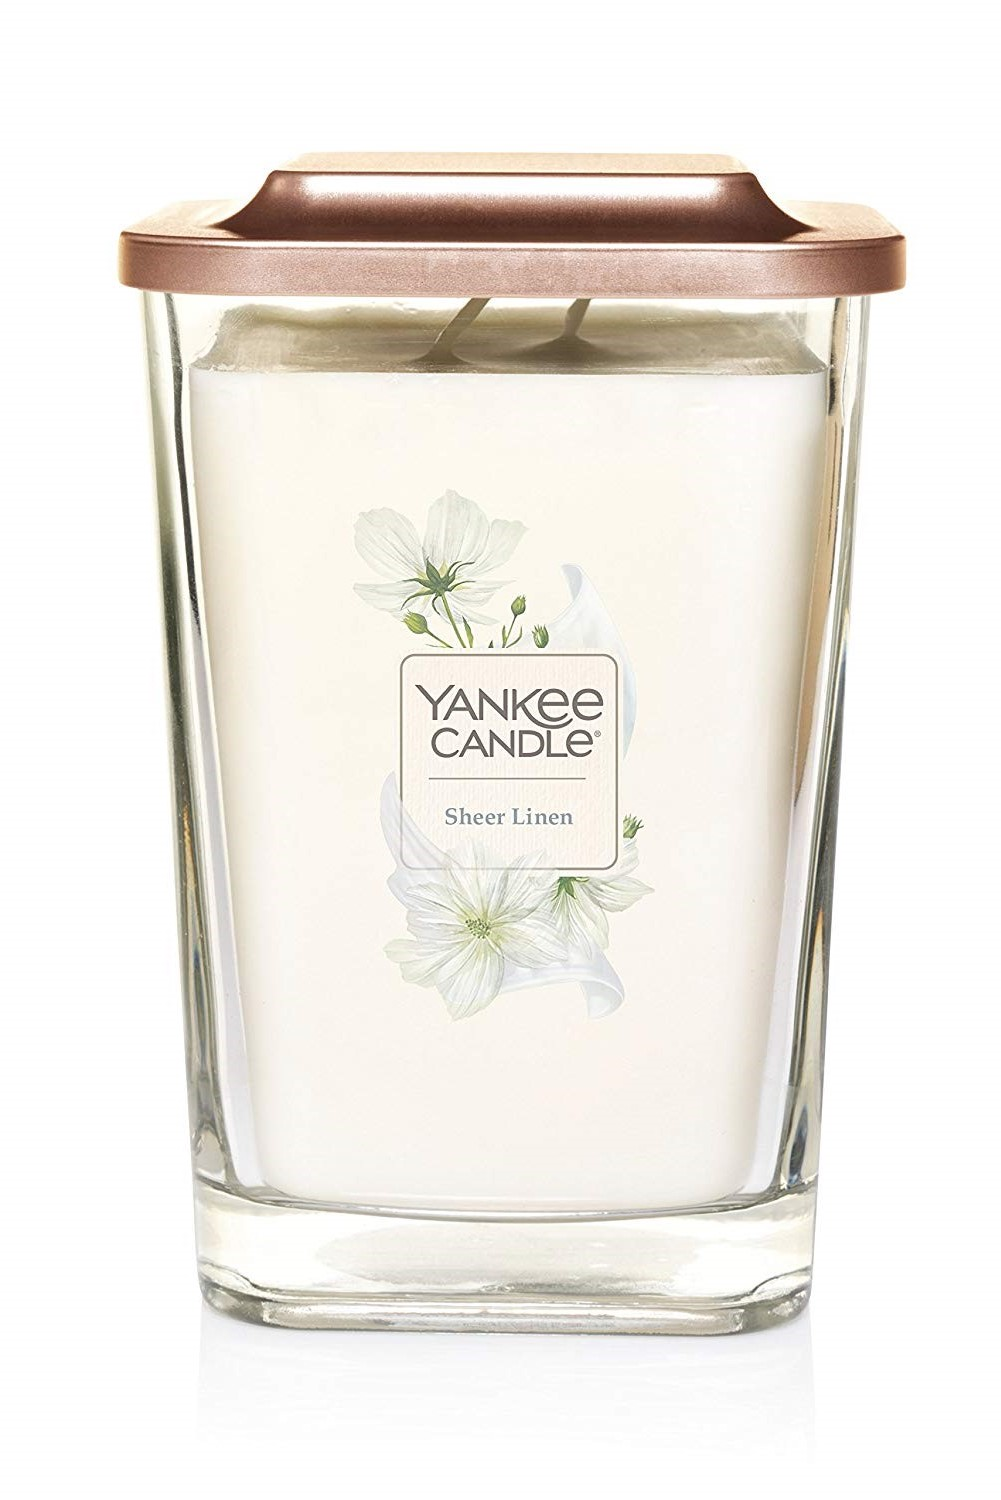 Yankee Candle cream / cream fragrant candle Elevation Sheer Linen large square 2 wicks